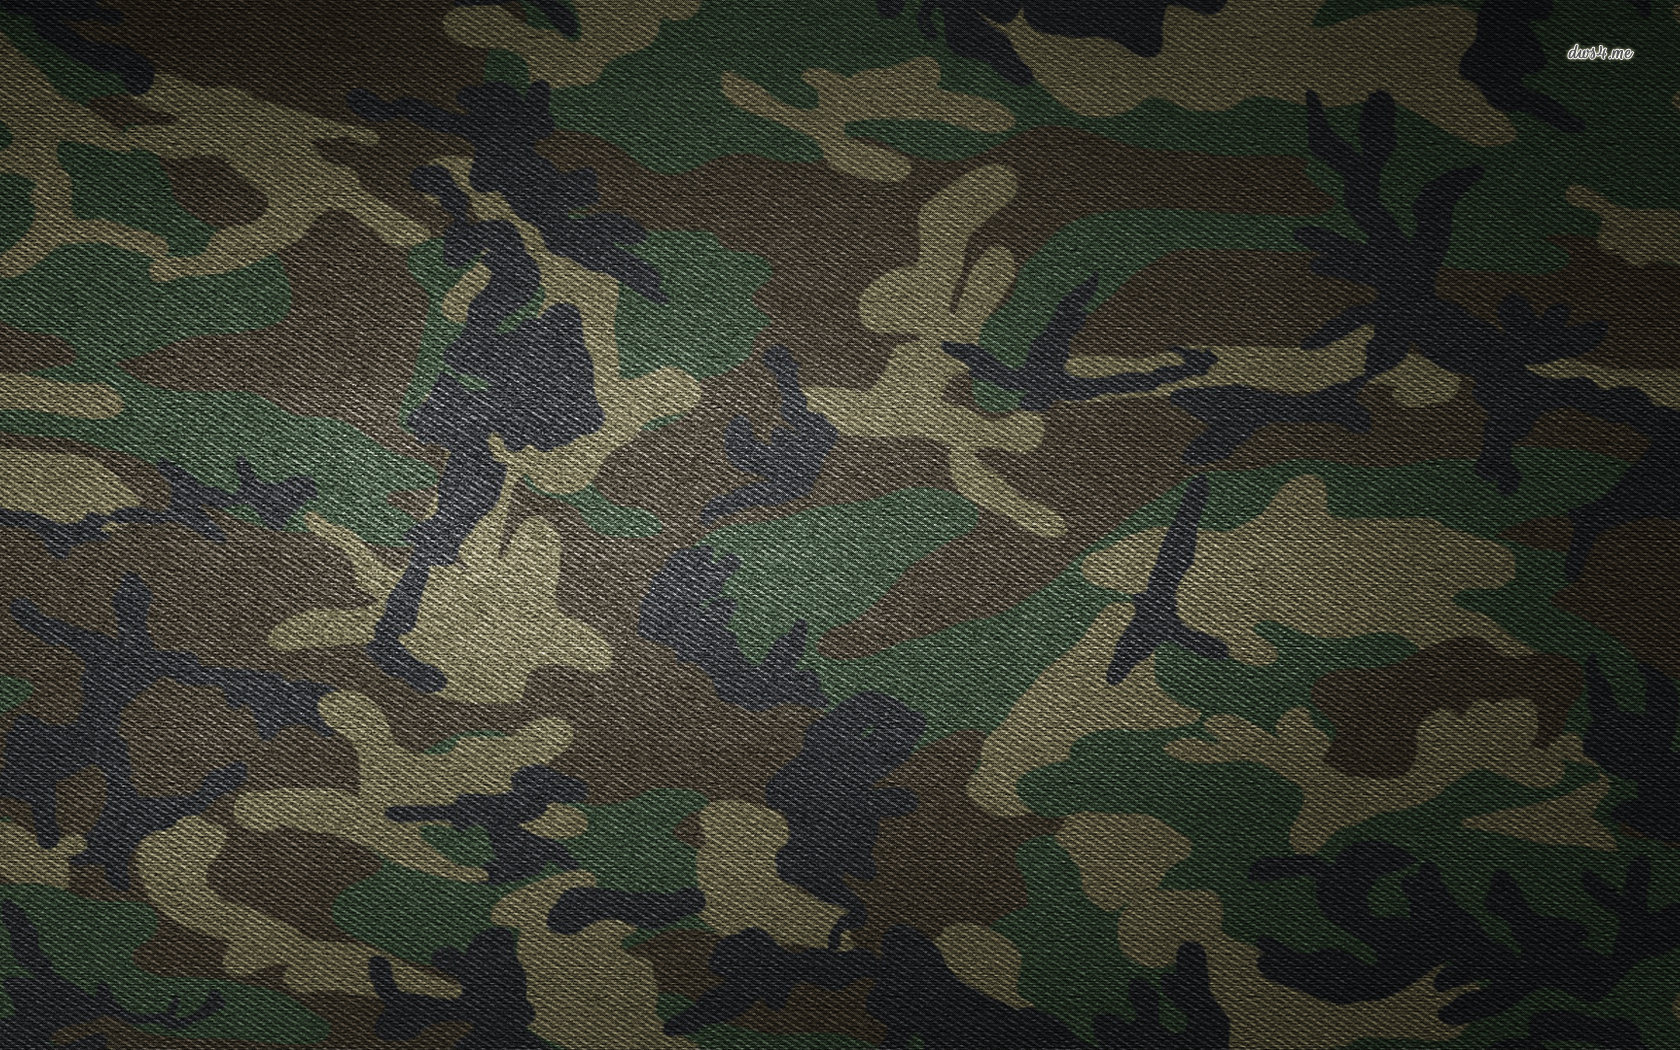 red bape camo wallpaper